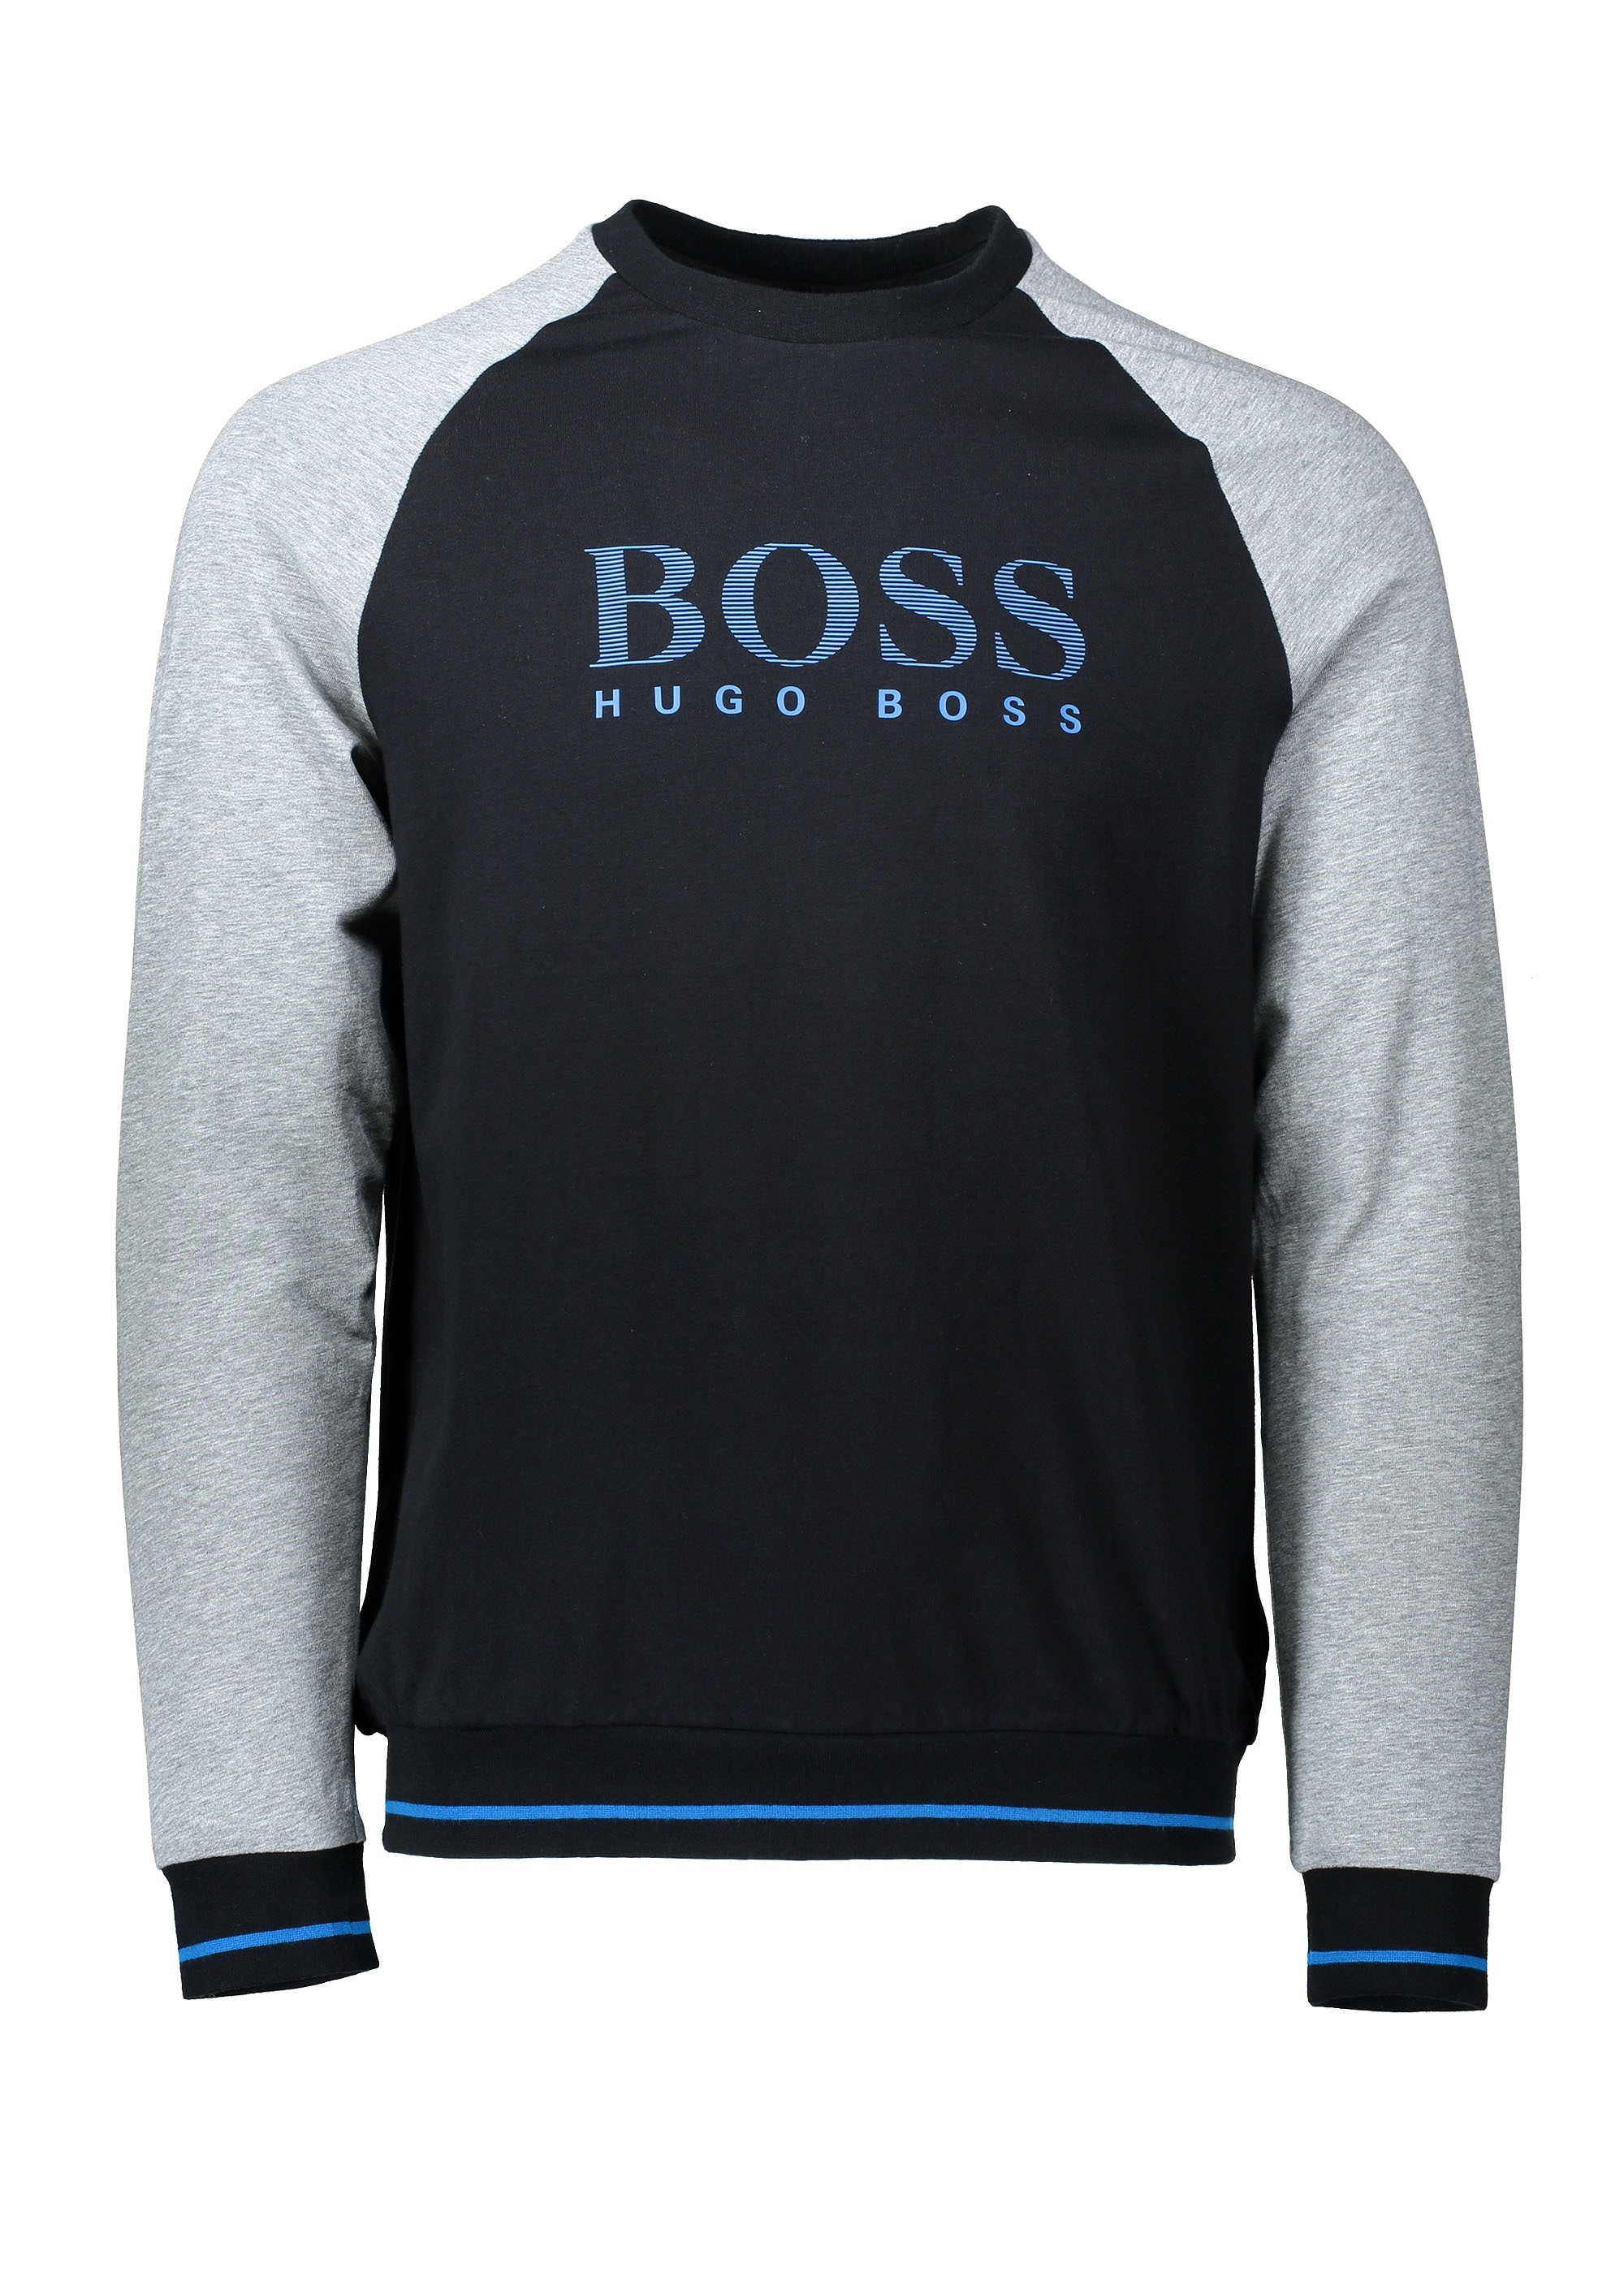 544bd5611 BOSS Authentic Sweatshirt - Black - Sweatshirts from Triads UK